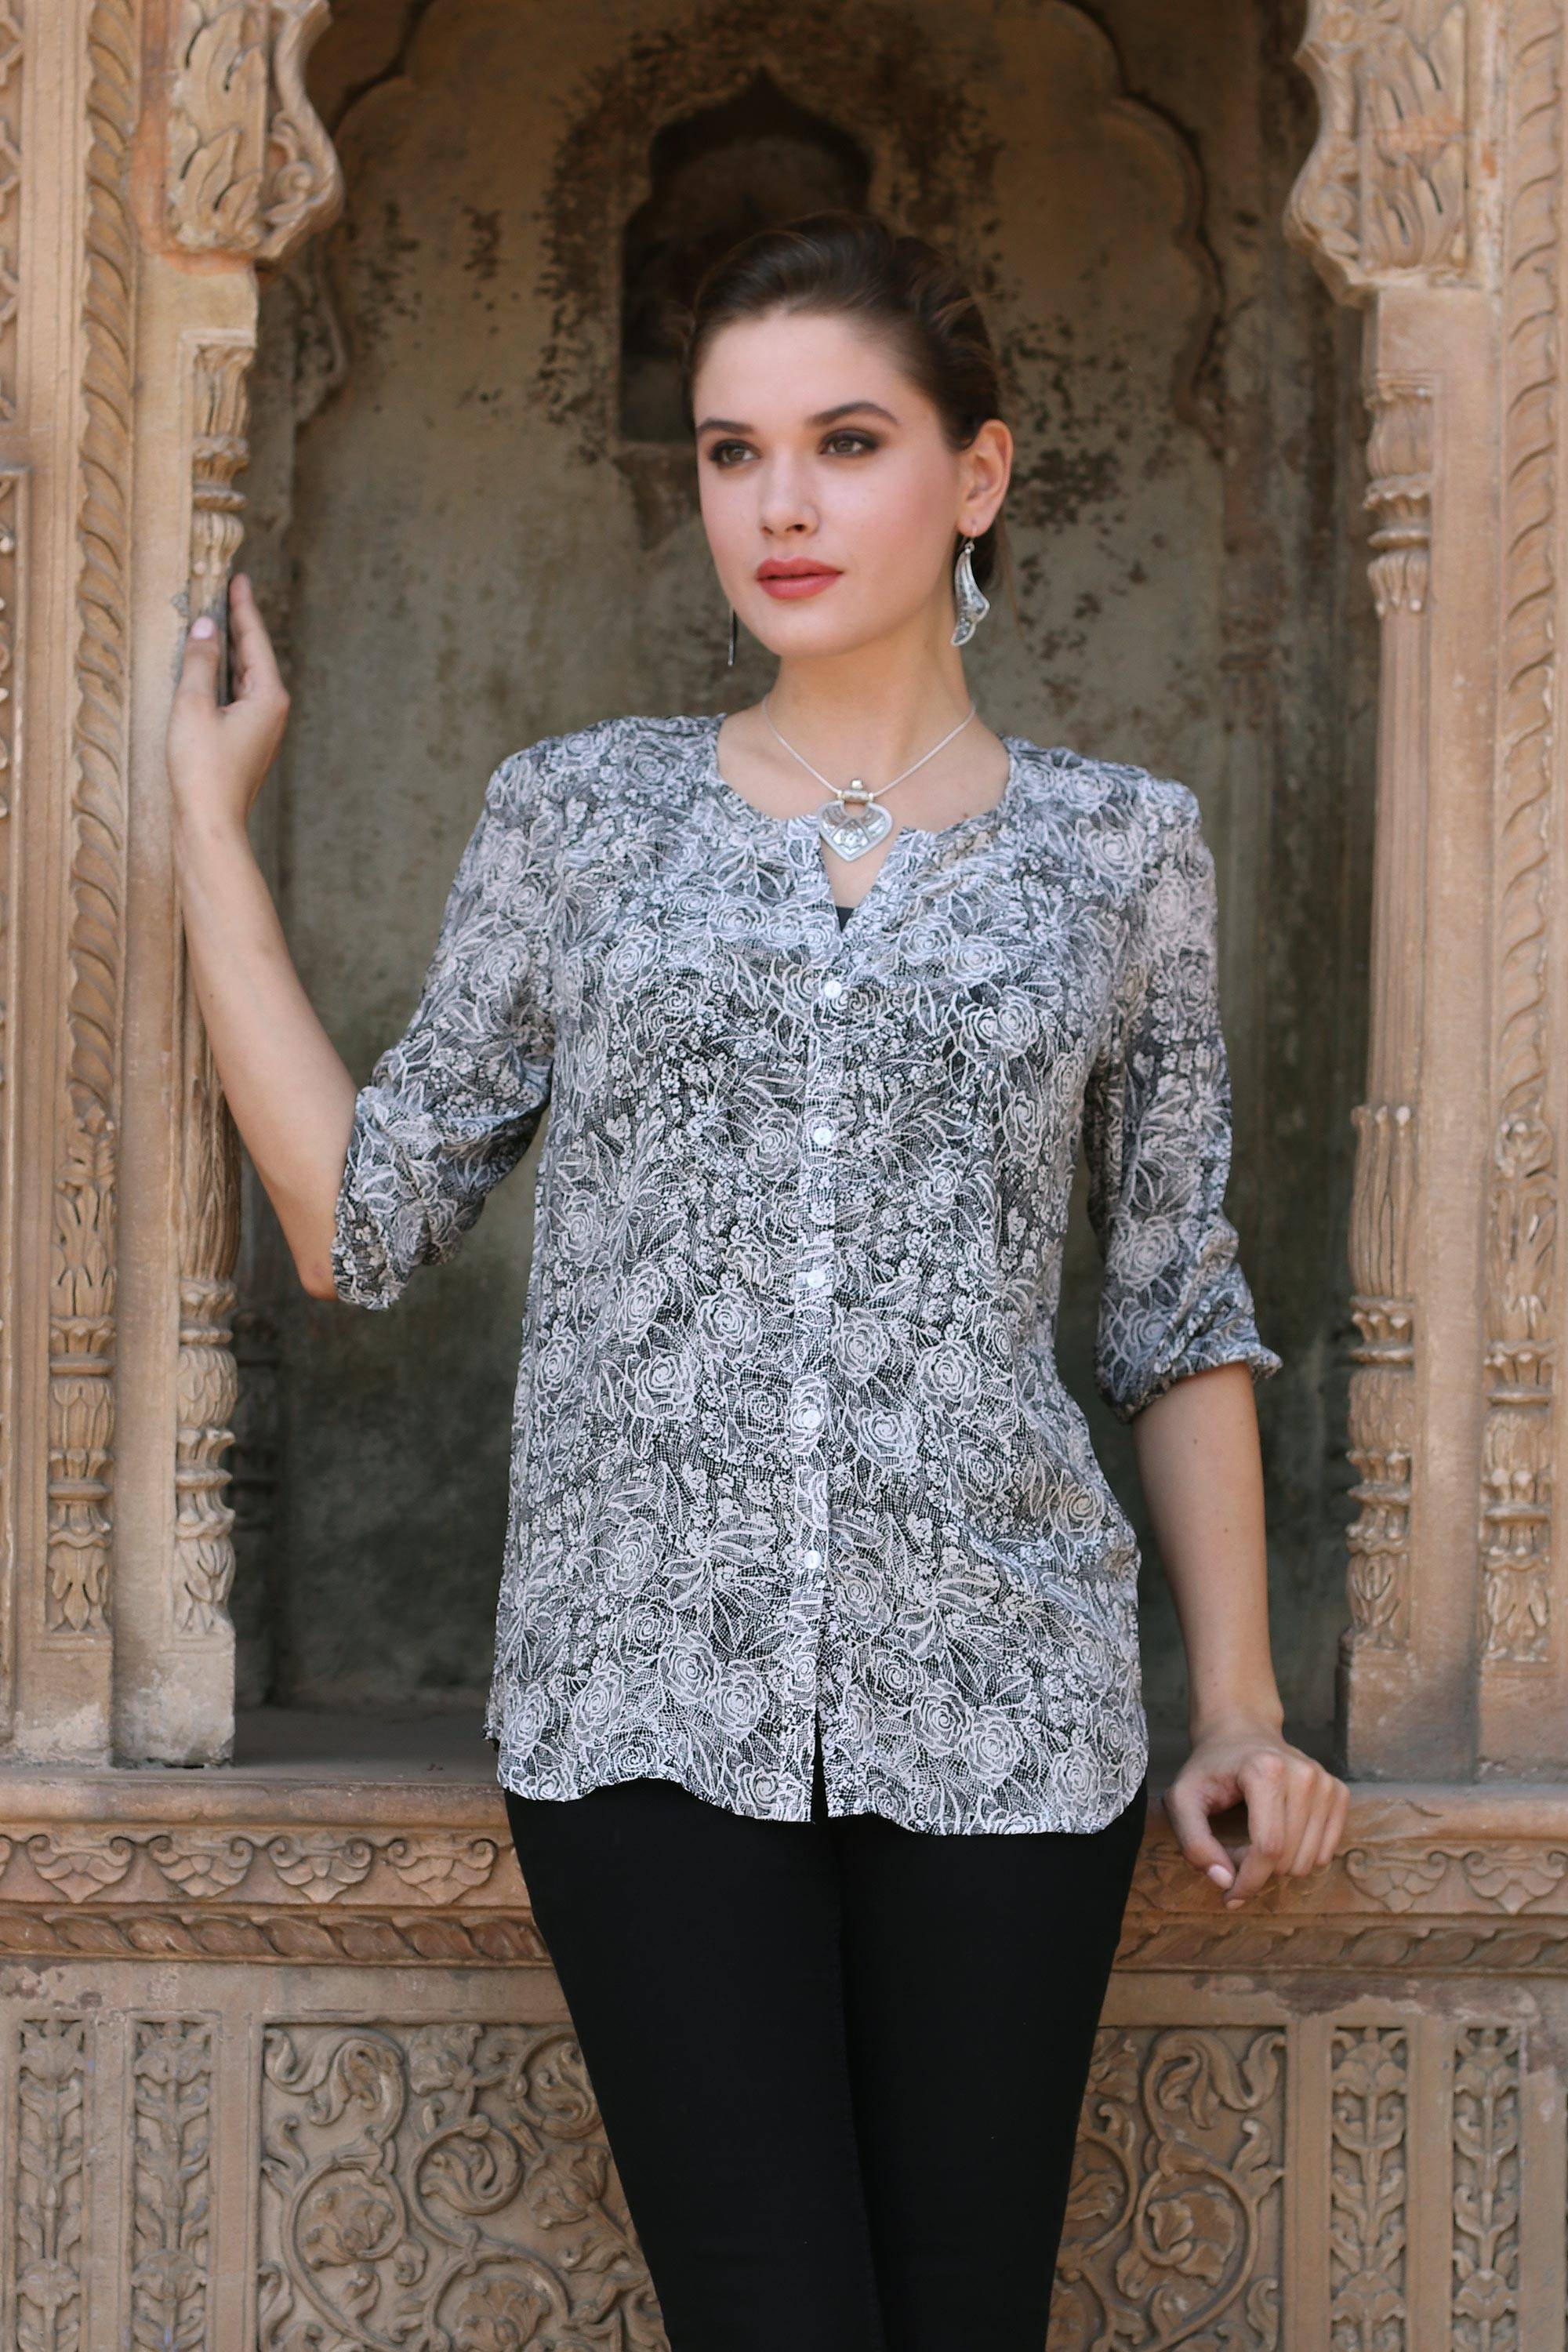 e1d125e94 Handmade Silk Button-Up Blouse with Floral Motif from India,